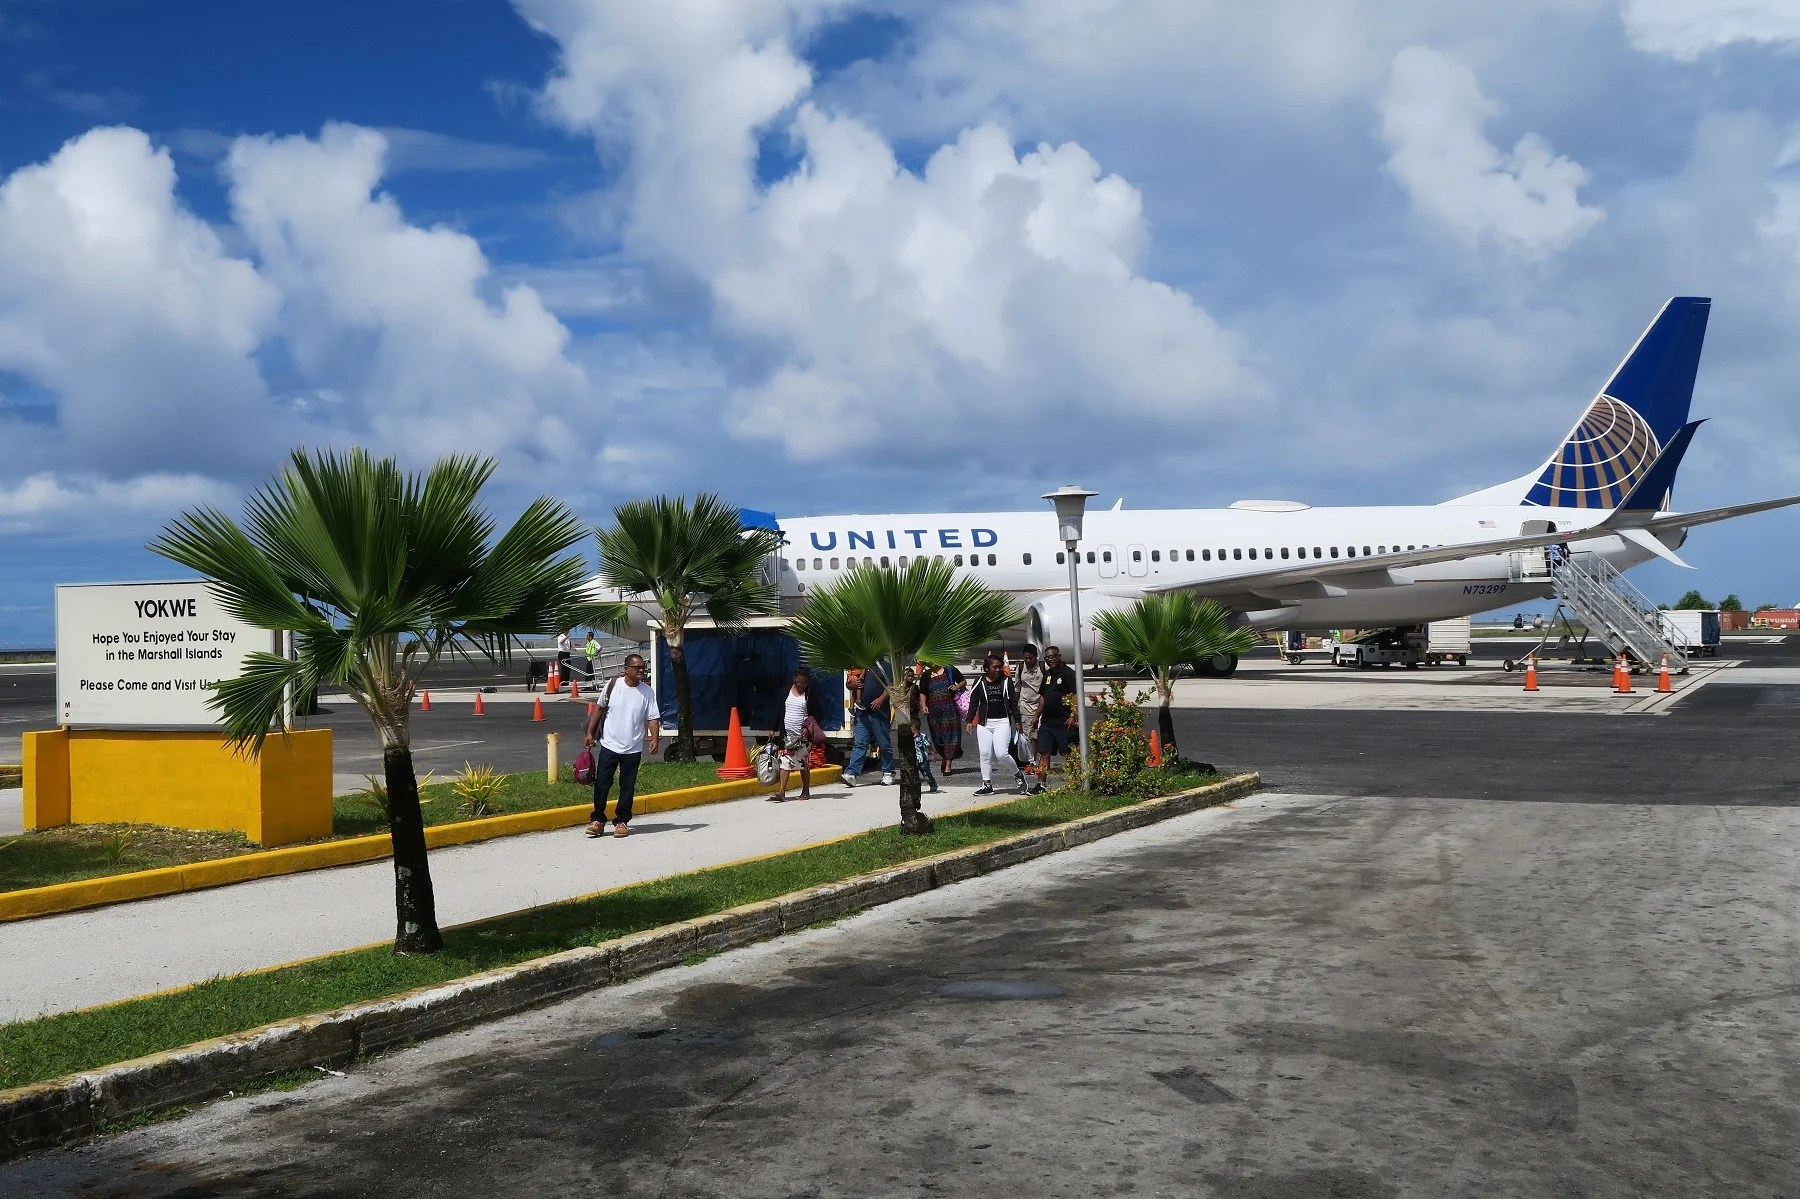 Dreaming of the Pacific Islands : United's Island Hopper and my bucket list trip post-corona